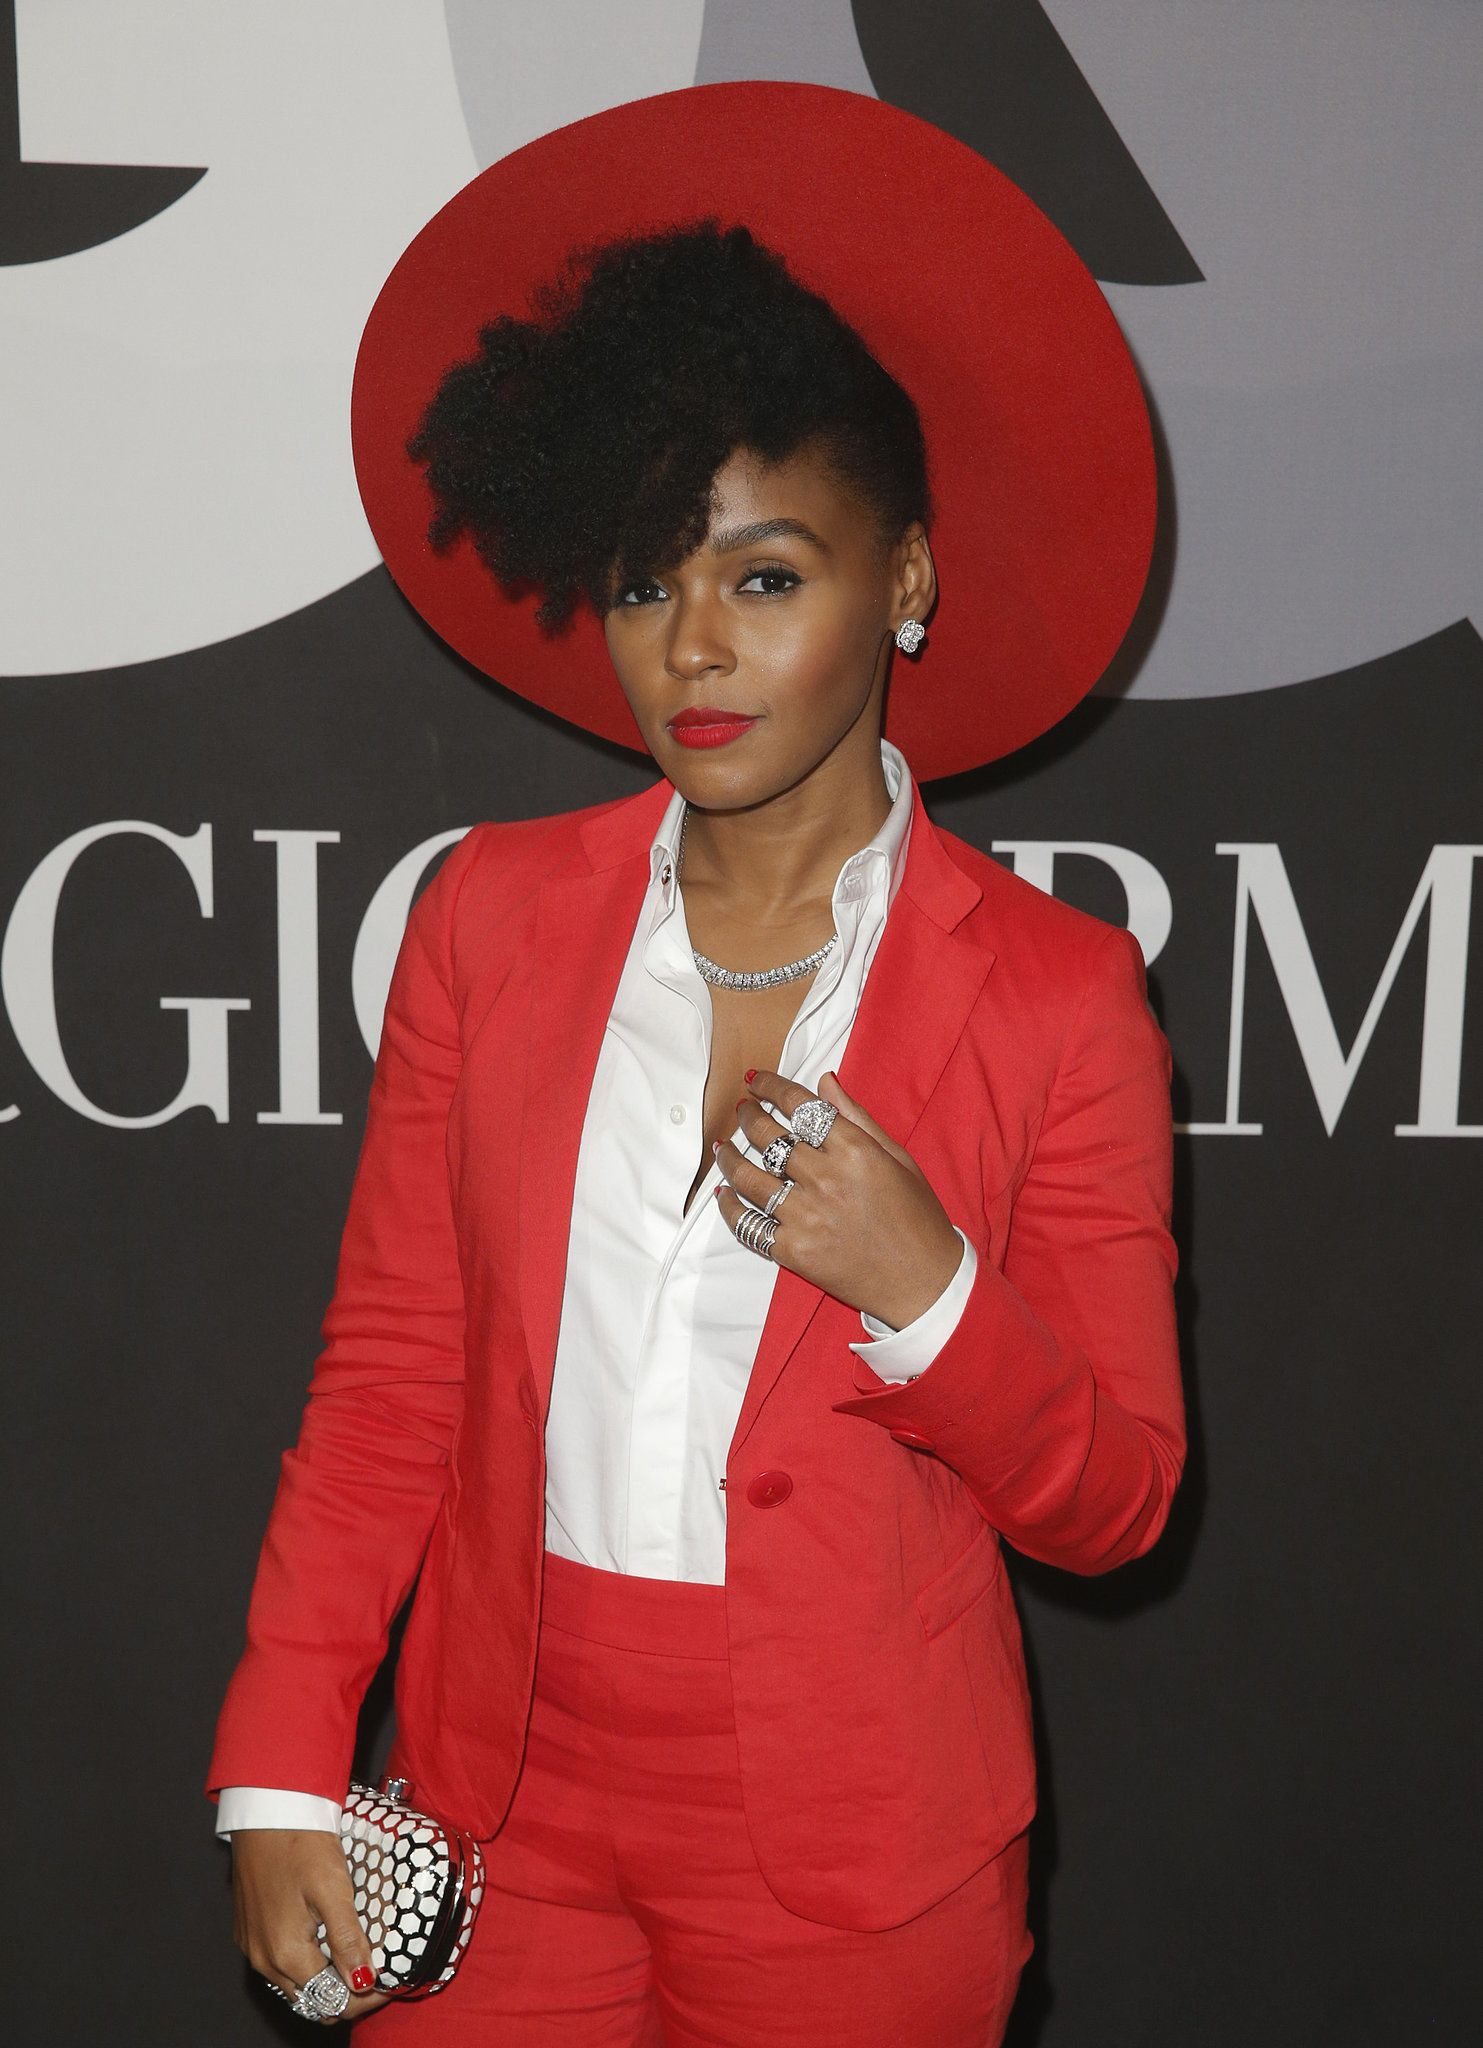 Janelle Monáe looked ravishing in red at the GQ and Giorgio Armani event.